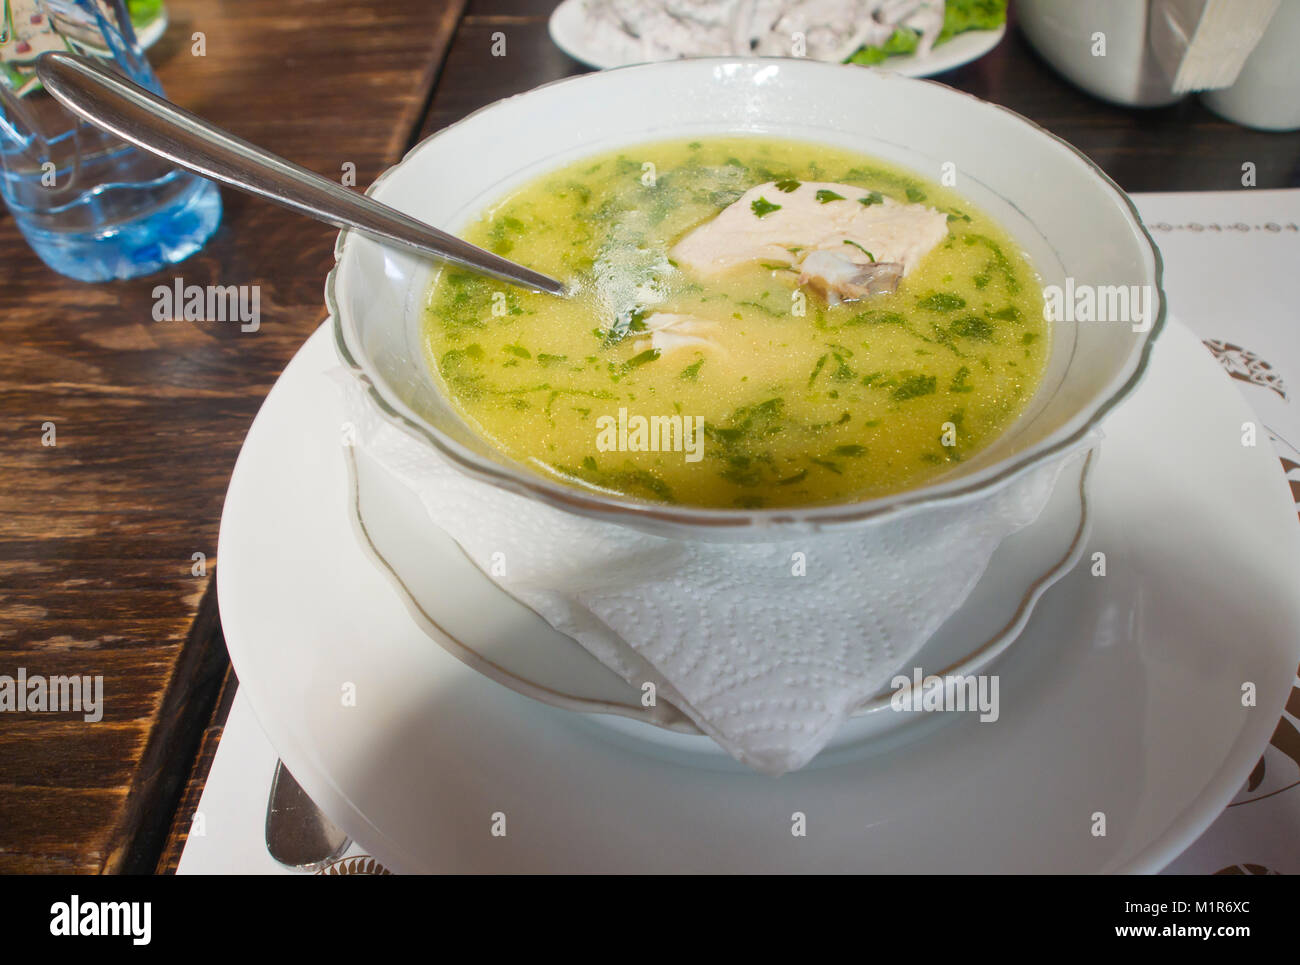 Rich broth with generous pieces of chicken, a traditional Georgian (Caucasus) soup  at the start of a meal - Stock Image